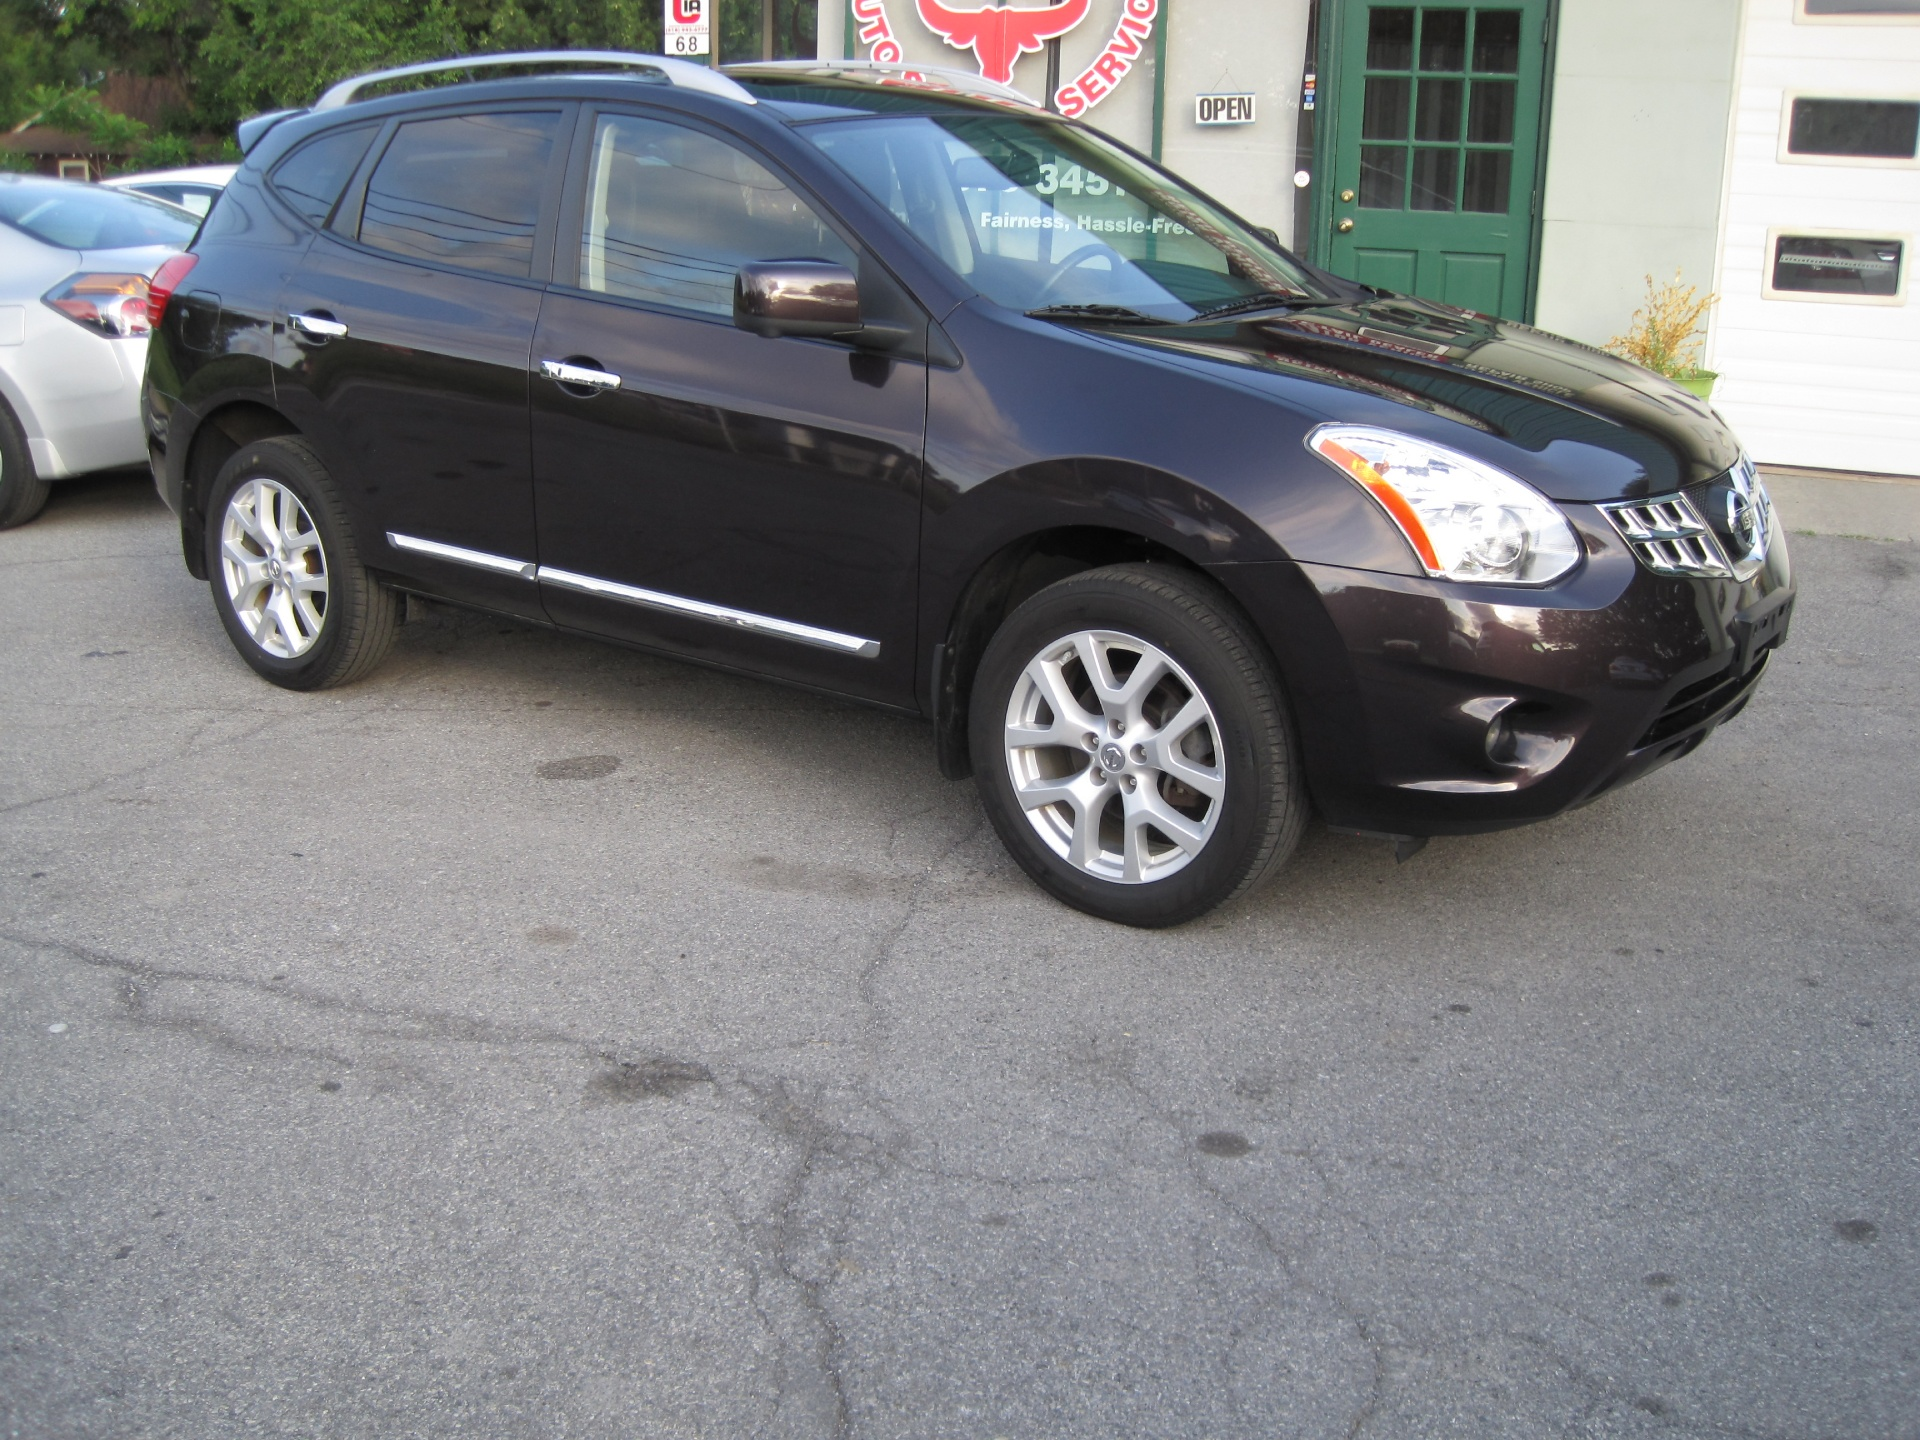 2013 nissan rogue sv w sl package loaded leather xenons sunroof navigation bose stock 15099. Black Bedroom Furniture Sets. Home Design Ideas